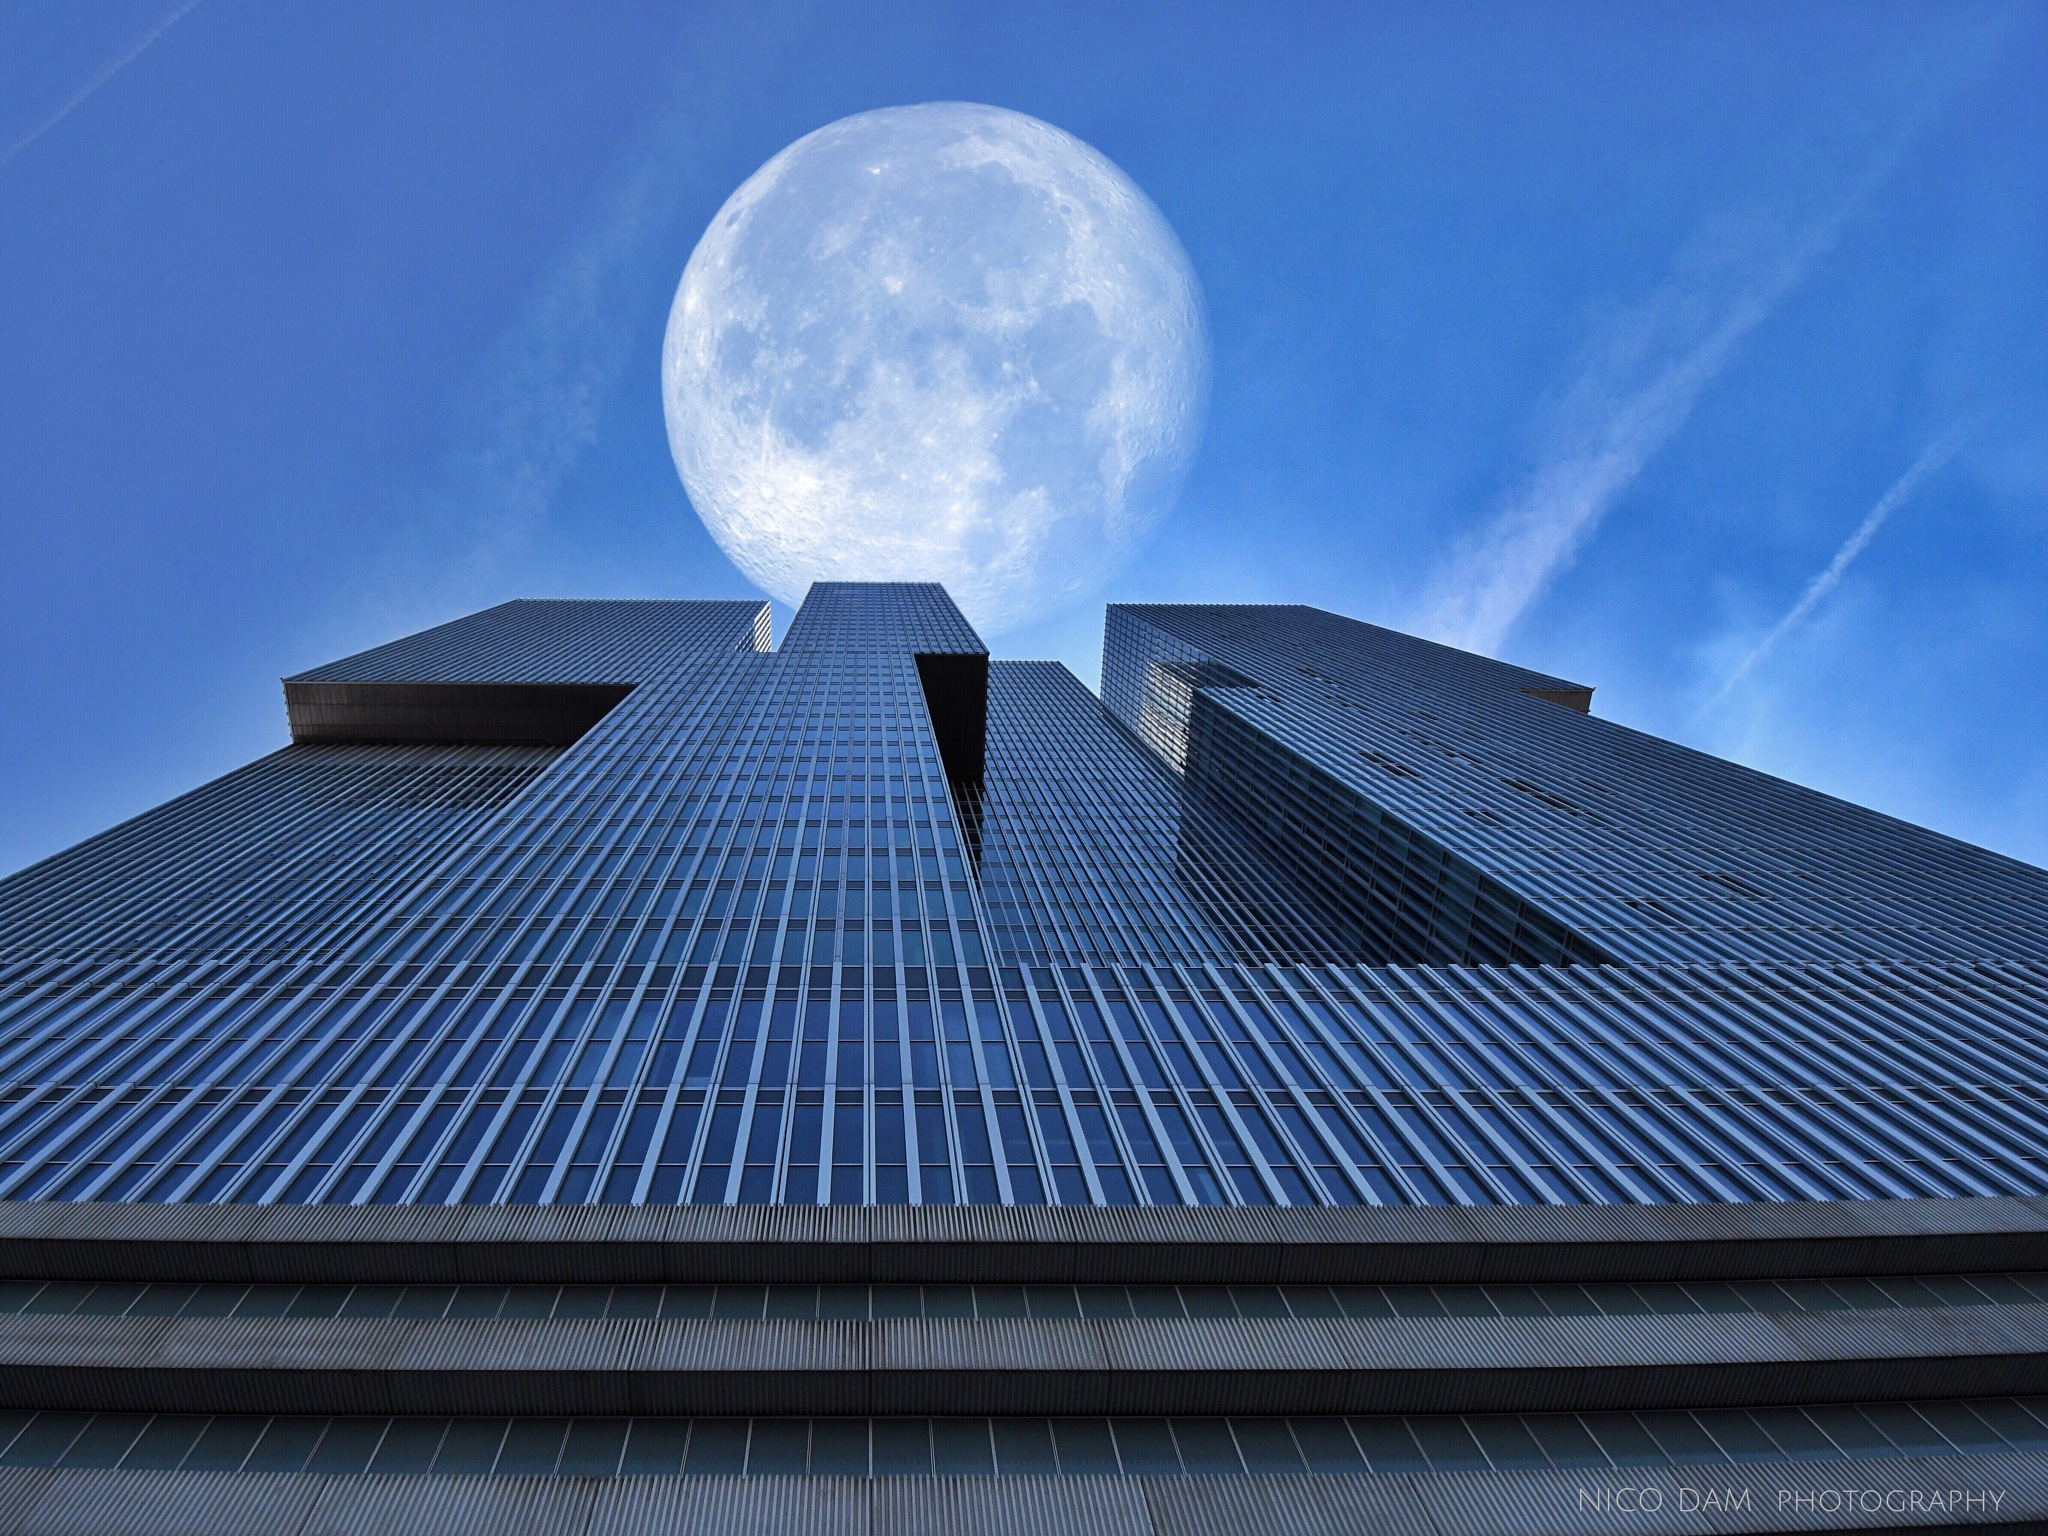 Rotterdam and the Moon by Nico Dam